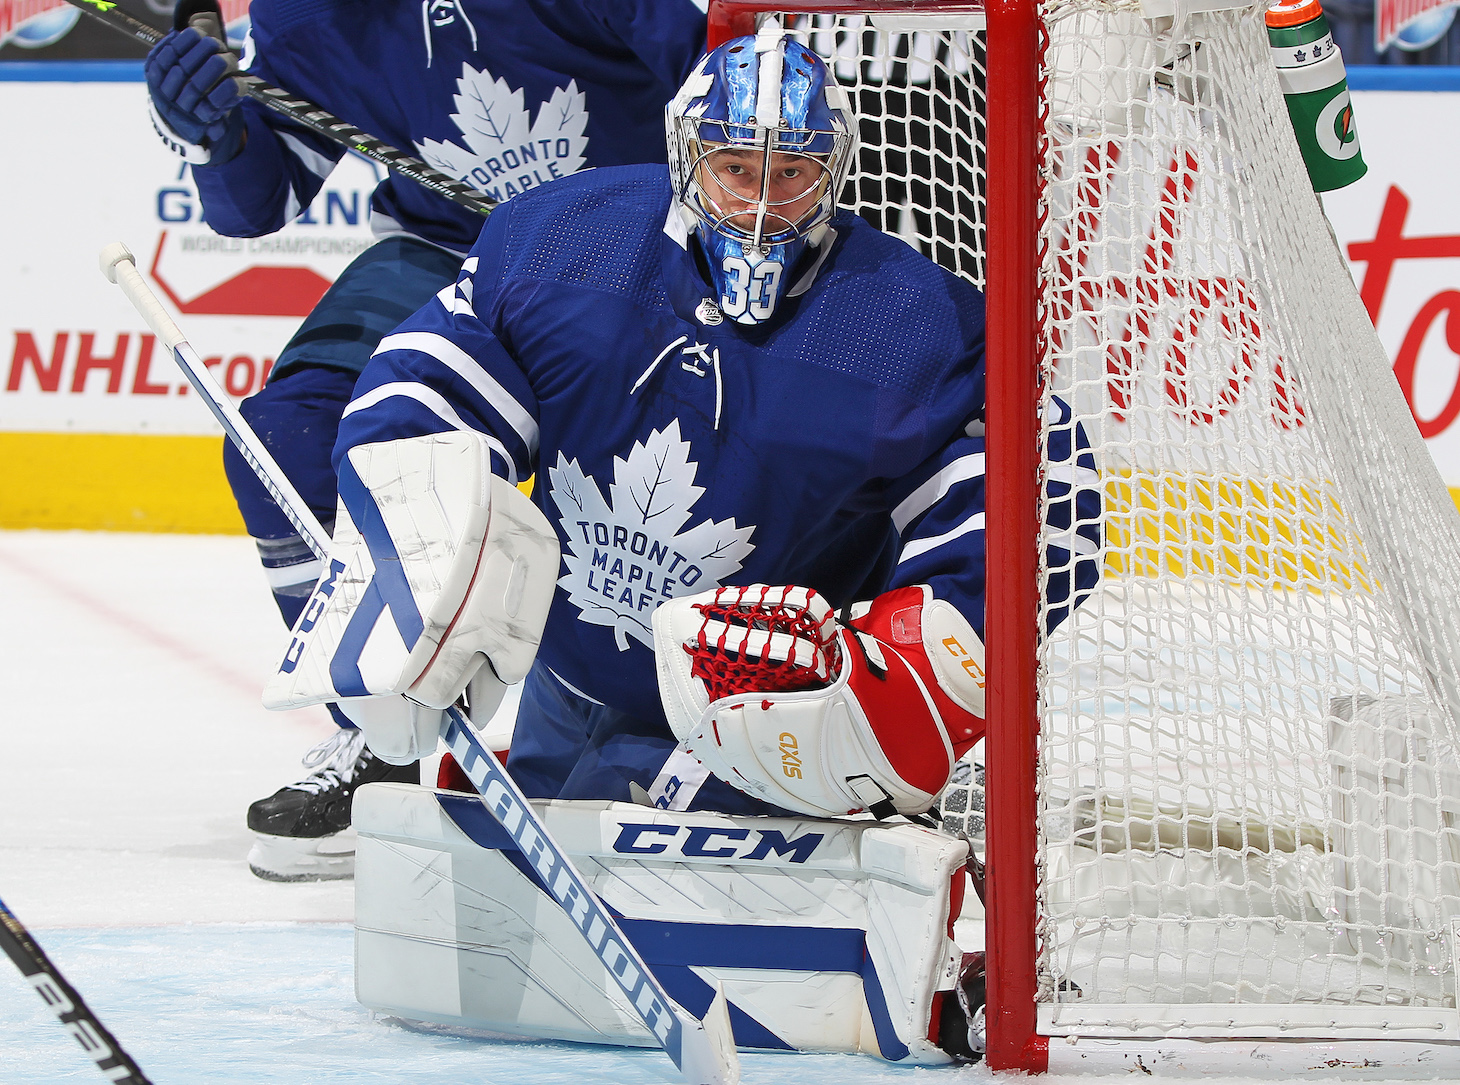 TORONTO, ON - APRIL 13: David Rittich #33 of the Toronto Maple Leafs protects the corner against the Calgary Flames during an NHL game at Scotiabank Arena on April 13, 2021 in Toronto, Ontario, Canada. (Photo by Claus Andersen/Getty Images) *** Local Caption *** David Rittich